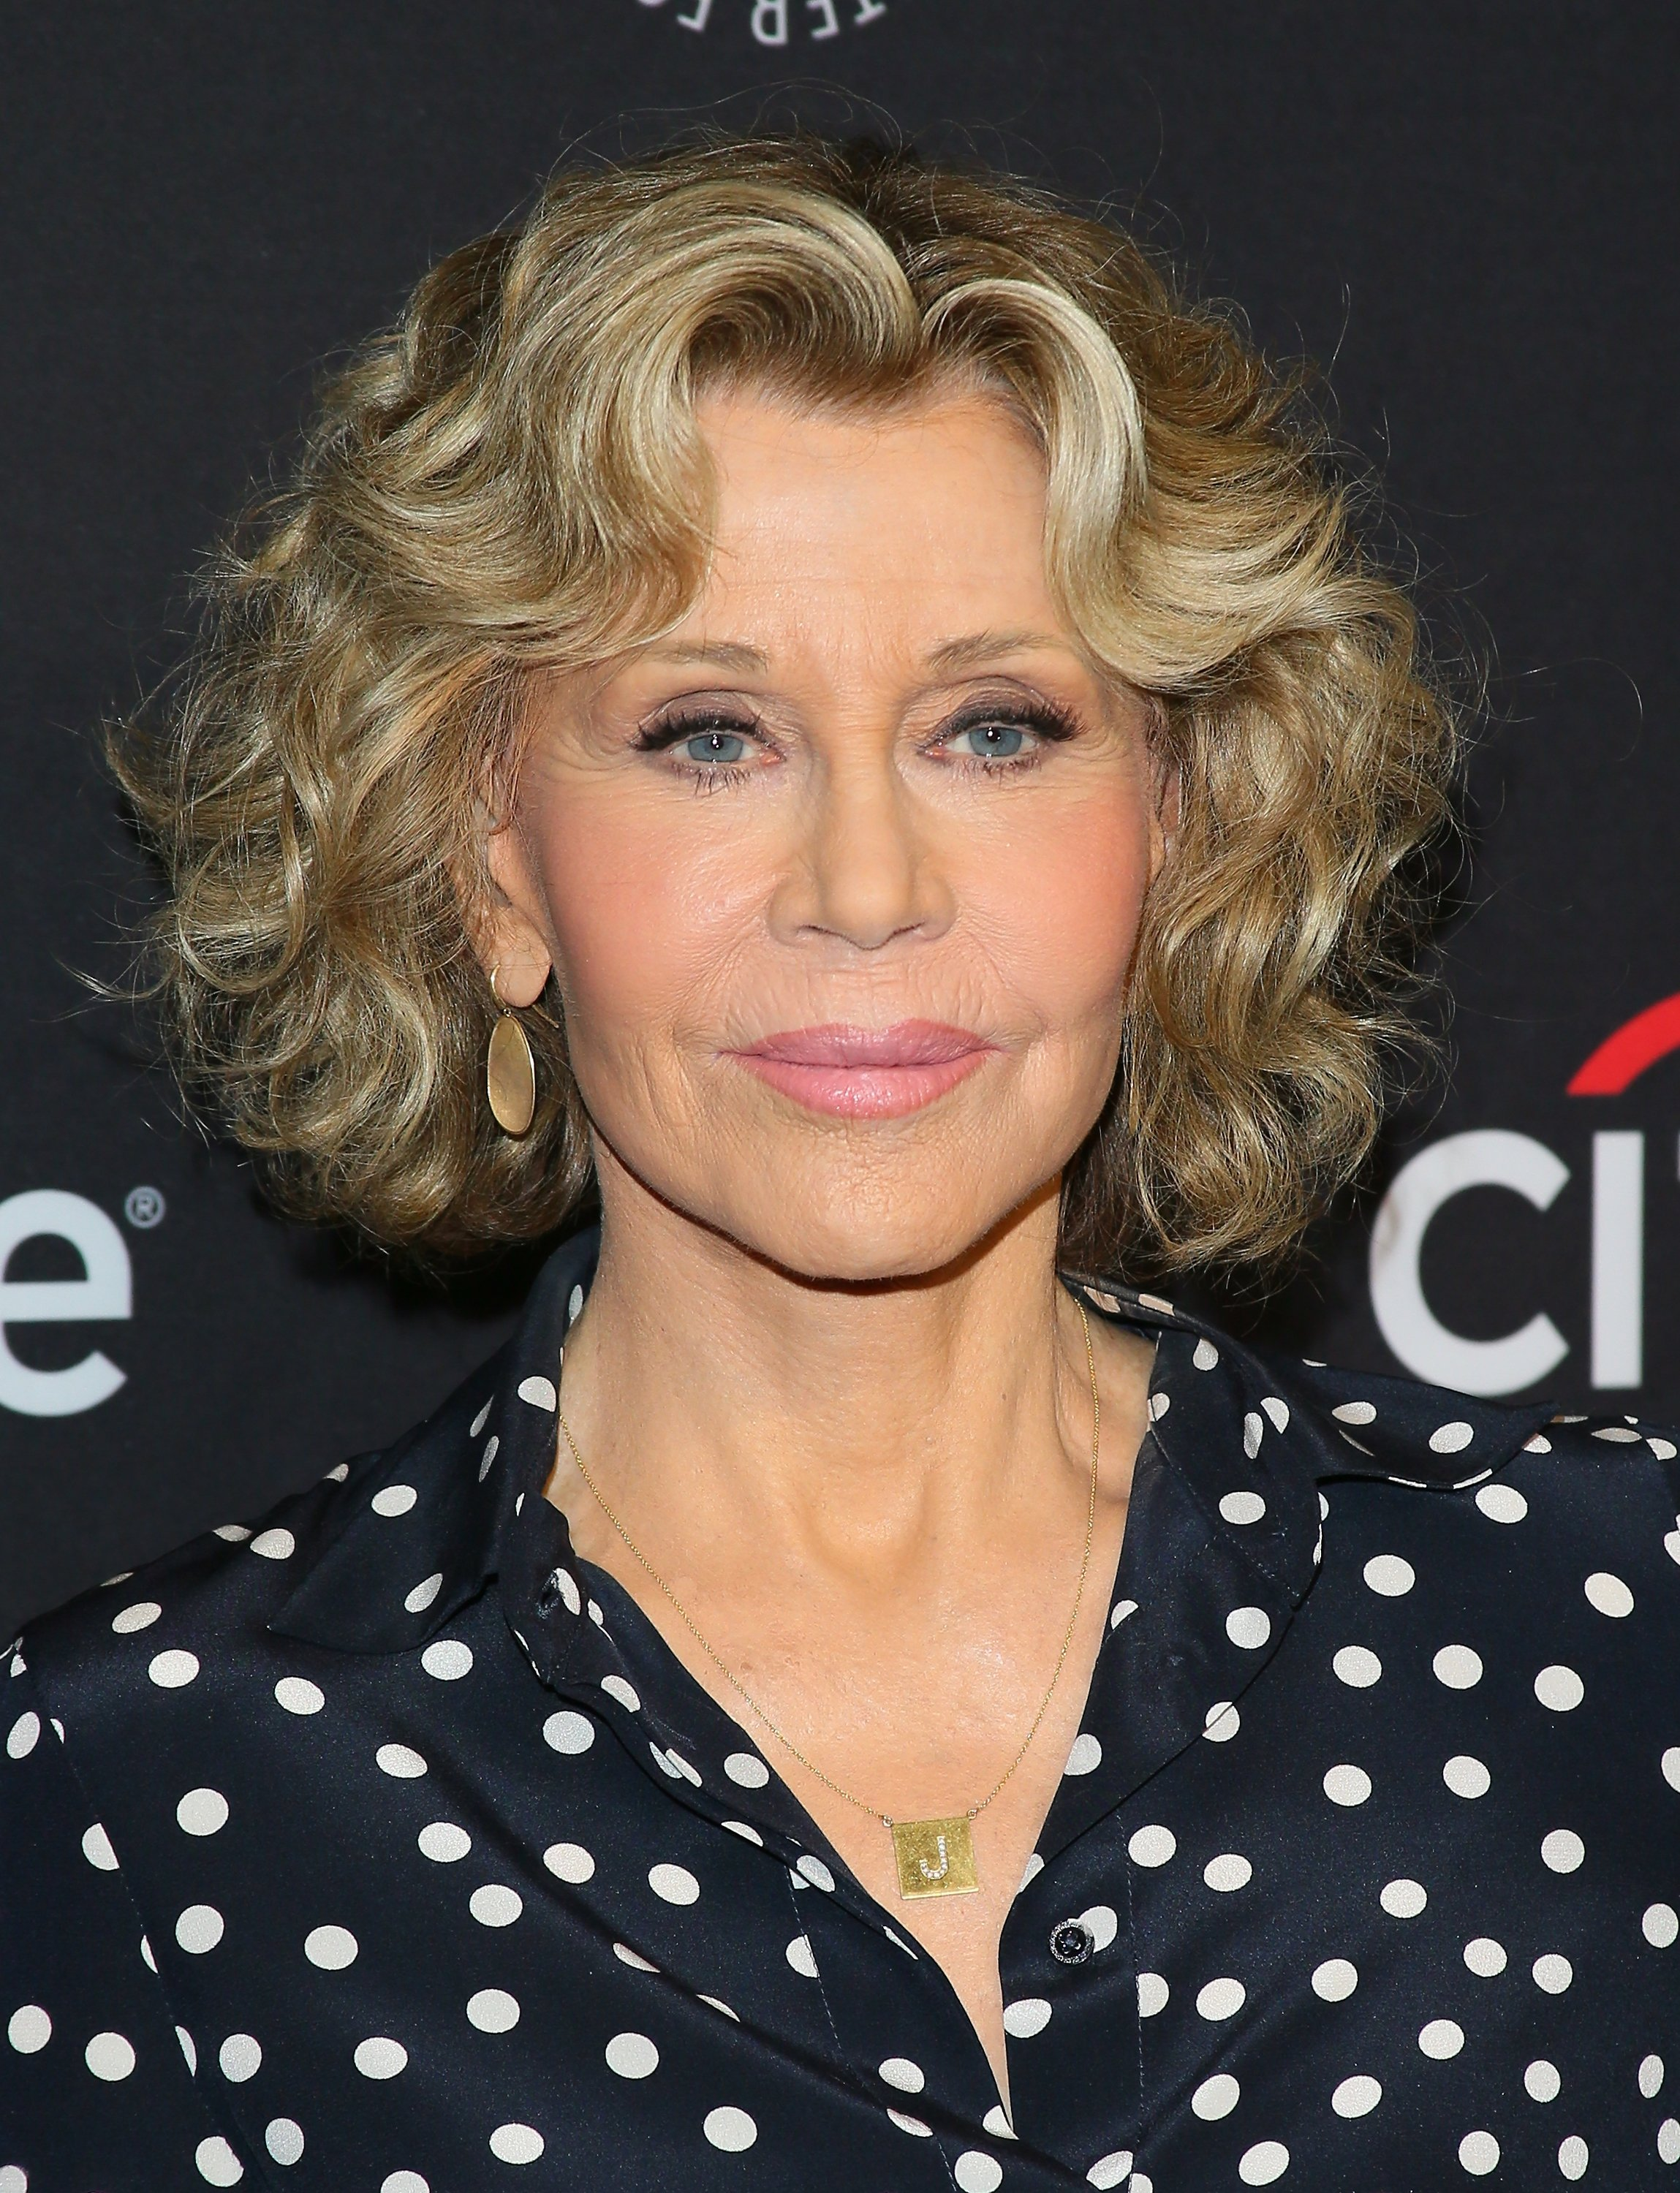 """Jane Fonda attends the Paley Center For Media's 2019 PaleyFest LA - """"Grace And Frankie"""" on March 16, 2019, in Los Angeles, California. 